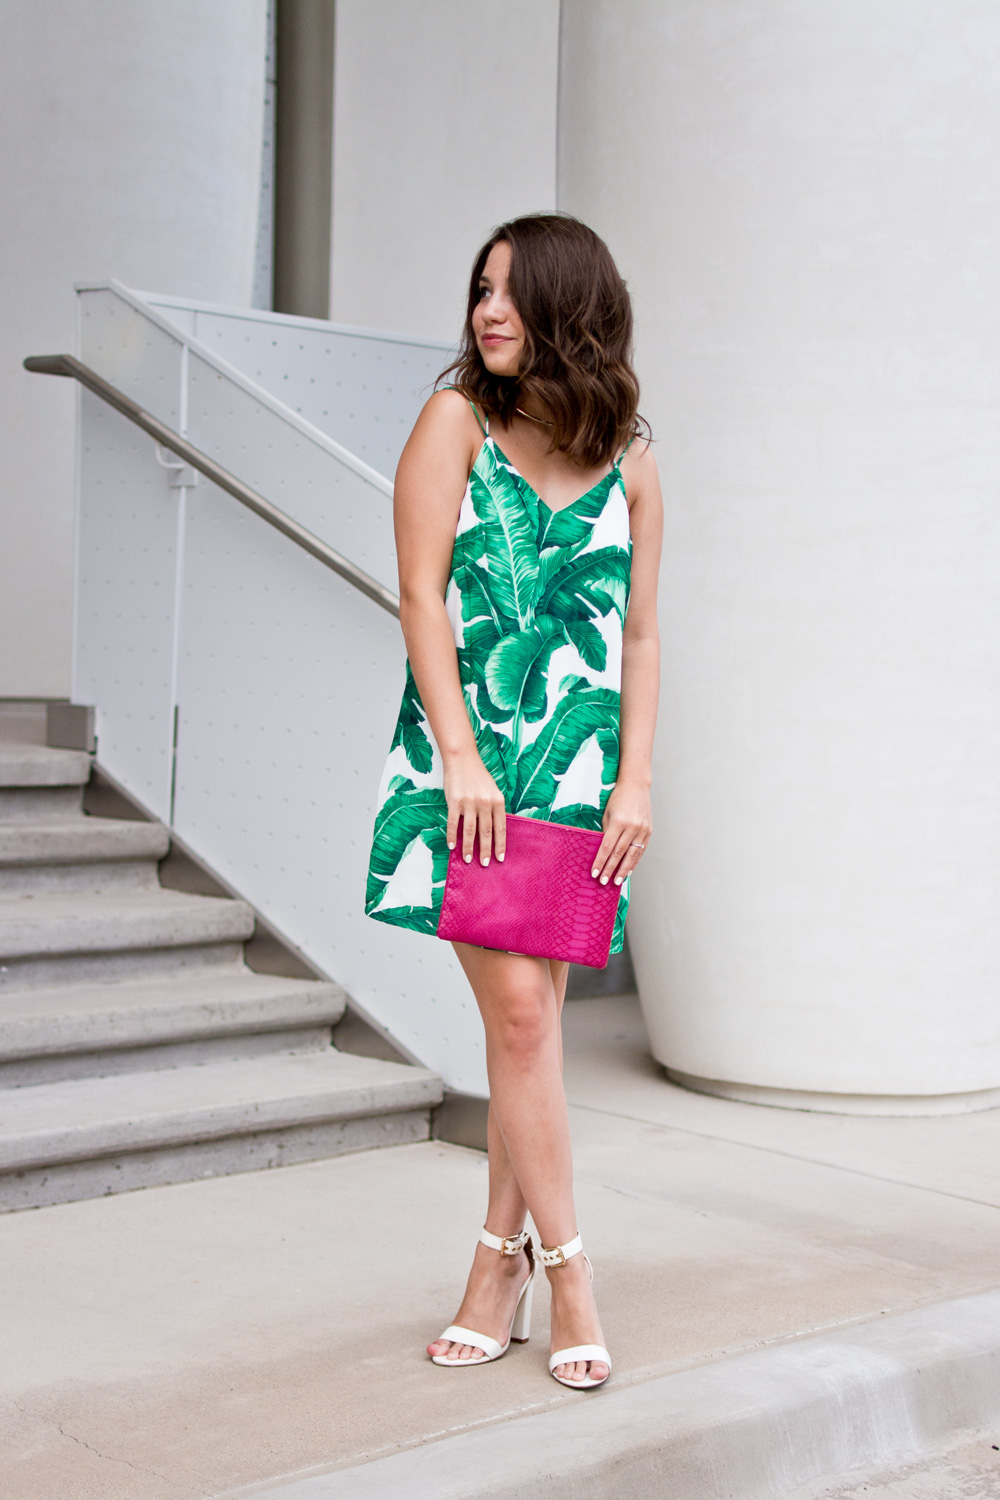 Shein Palm Print dress hot pink clutch vacation outfit